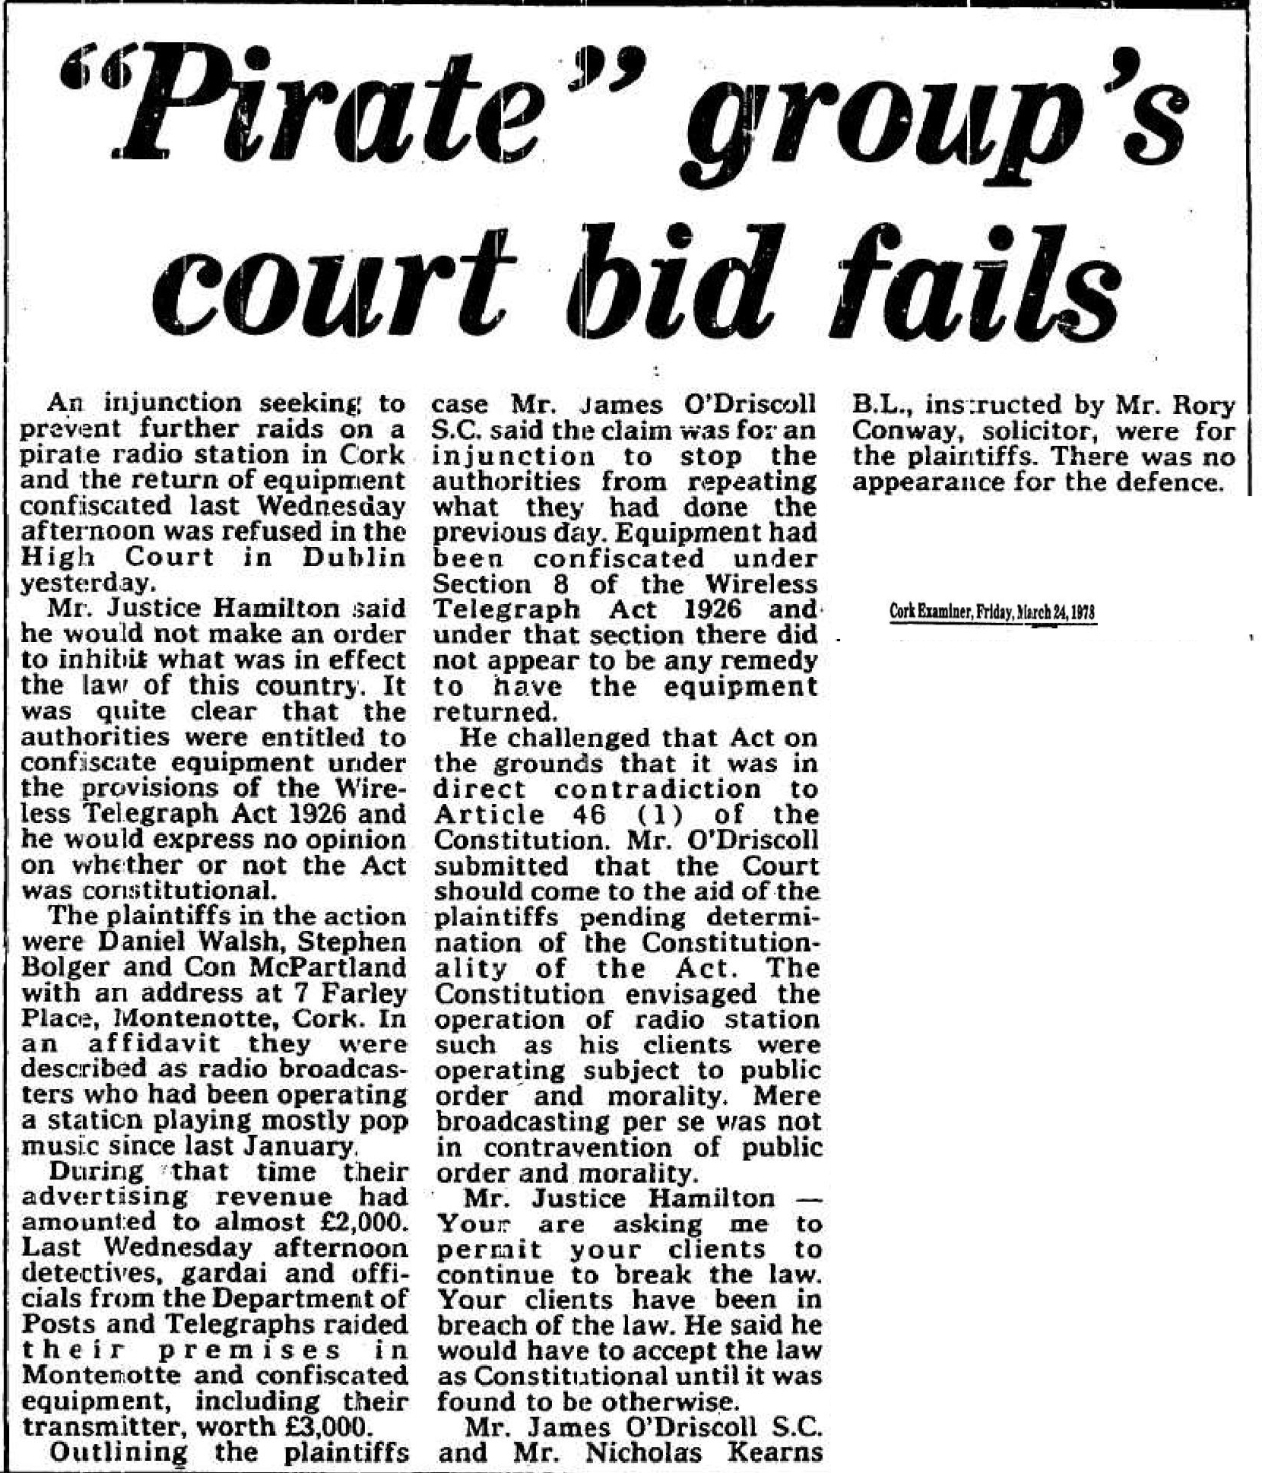 'Pirate' group's court bid fails was a headline in The Cork Examiner dated March 24th 1979